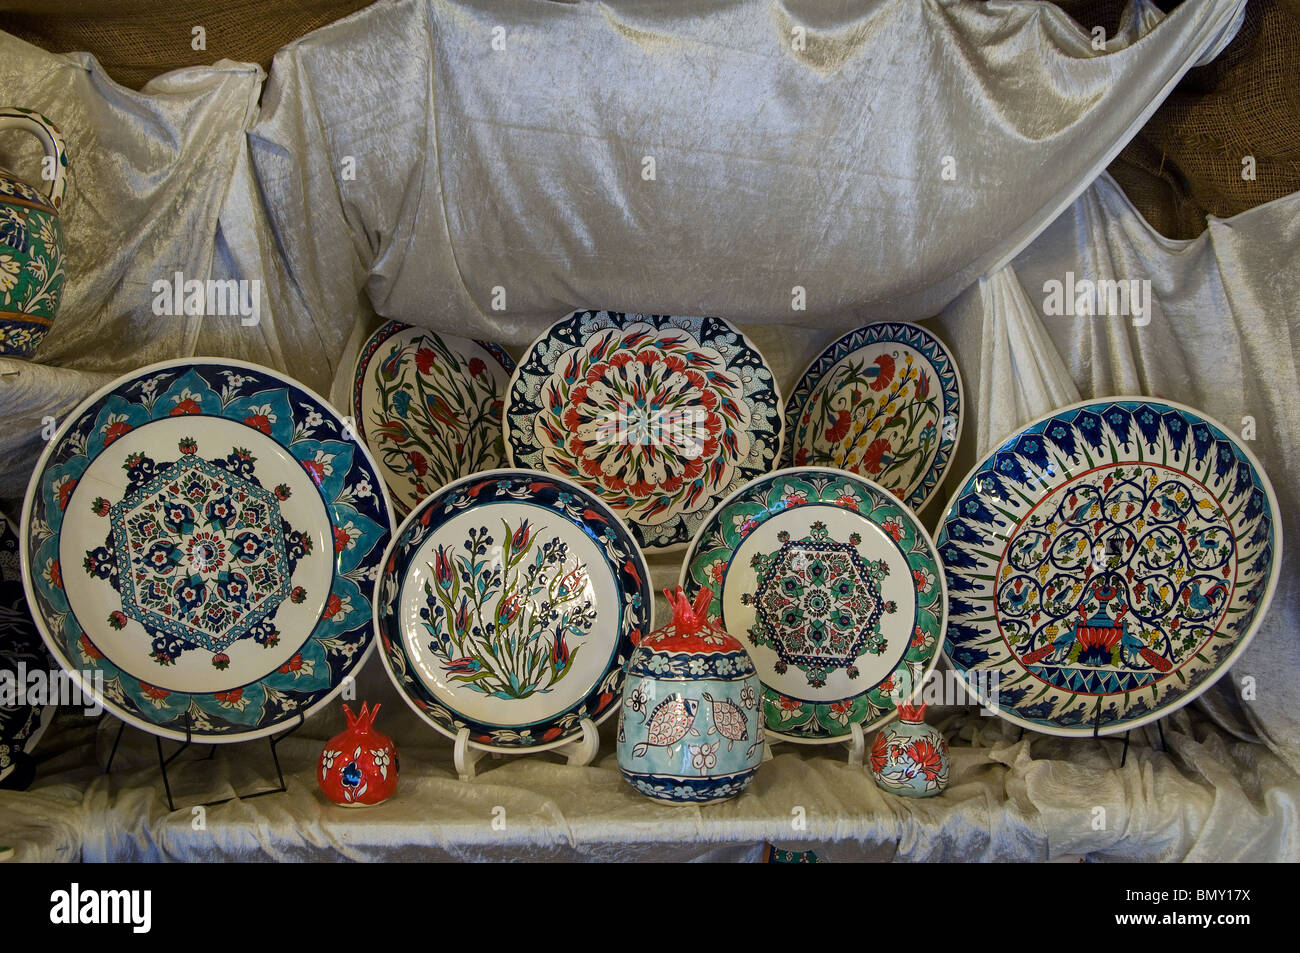 Handpainted ceramic plates at an armenian tile workshop east stock handpainted ceramic plates at an armenian tile workshop east jerusalem israel dailygadgetfo Images